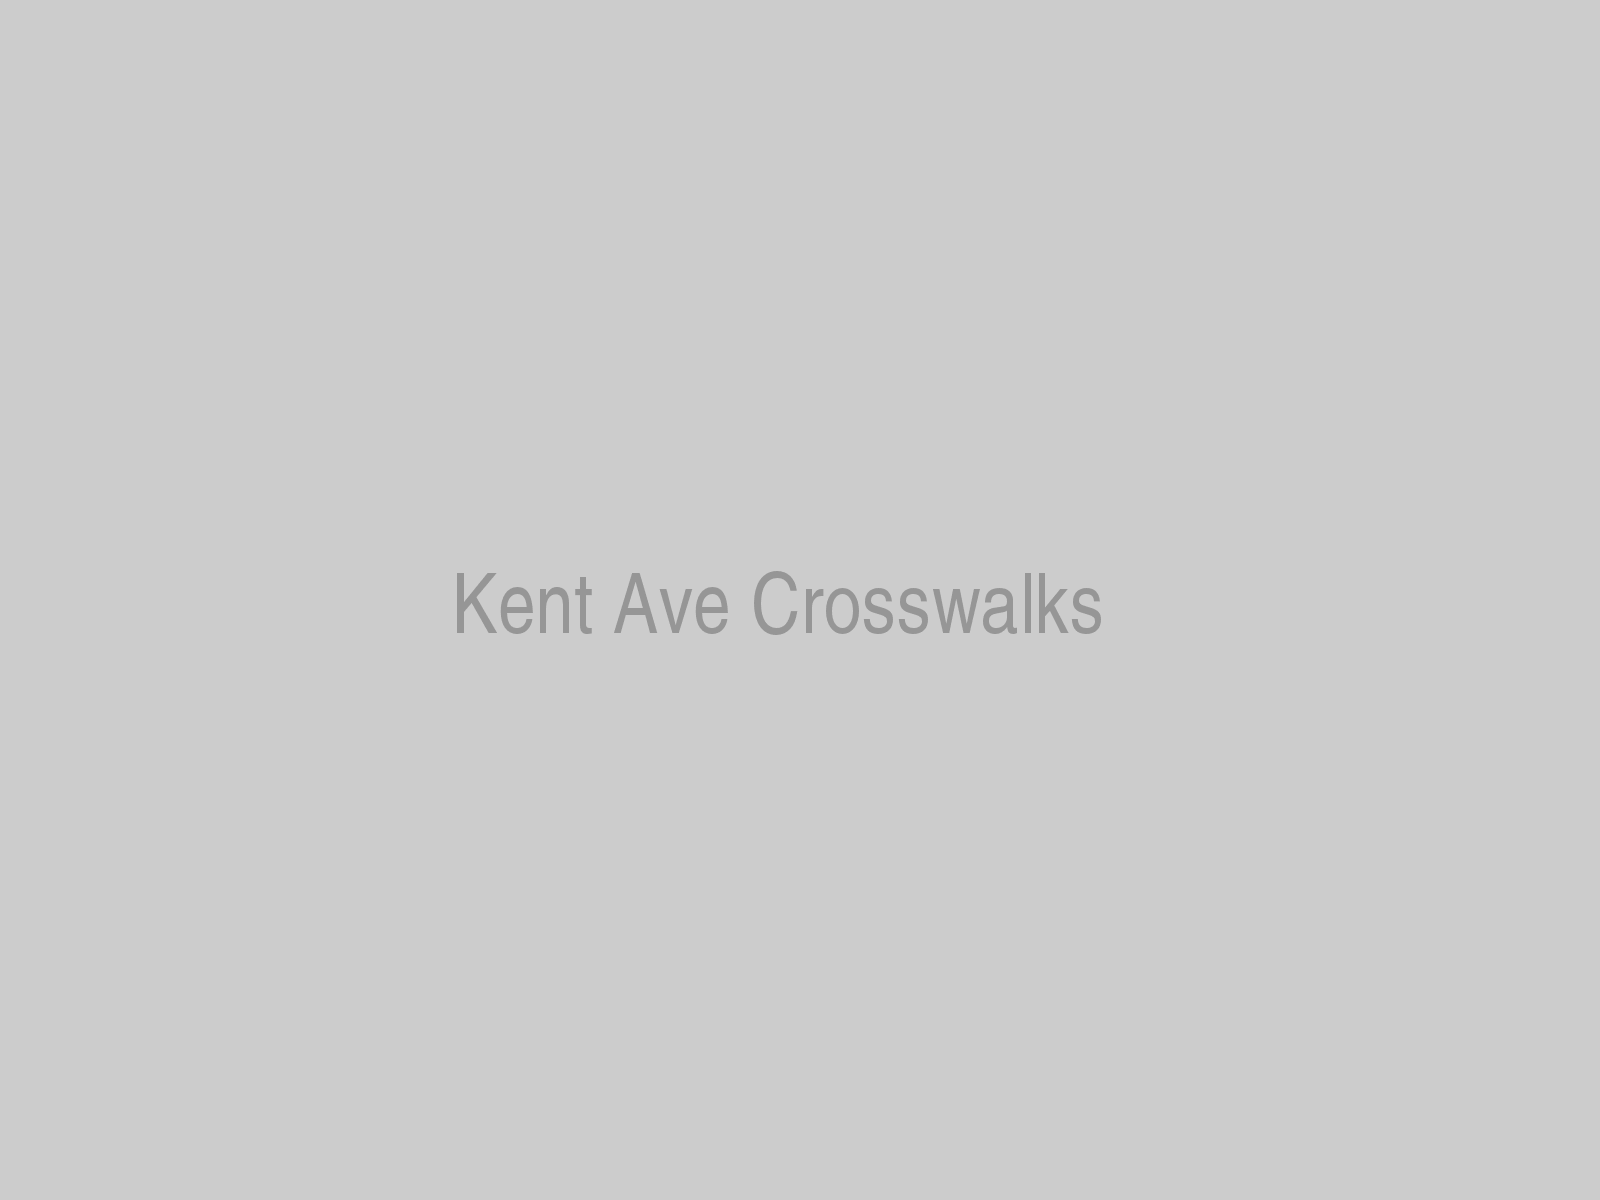 Kent Ave Crosswalks